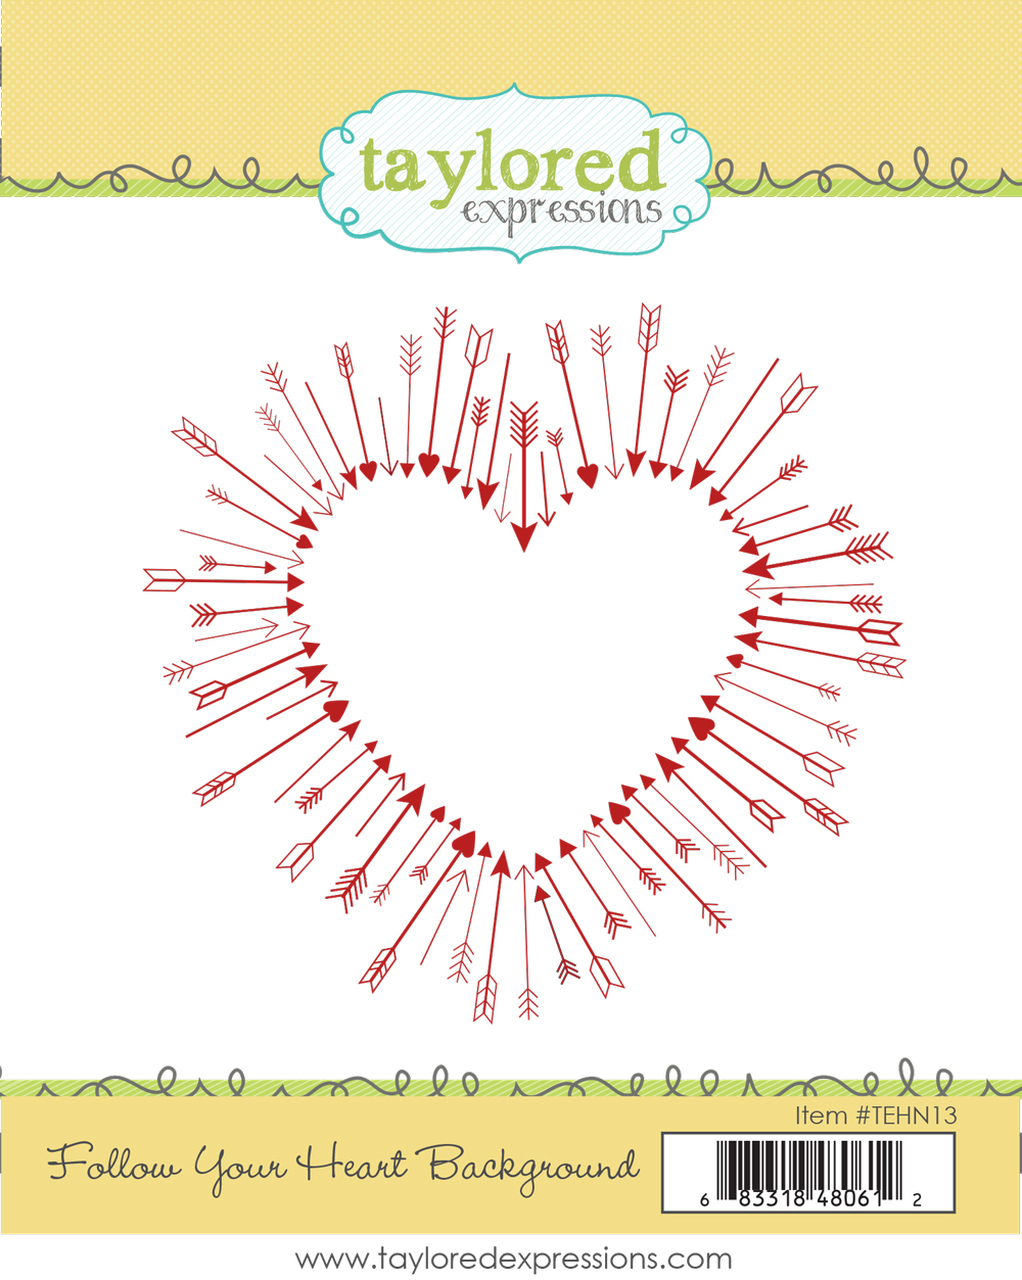 Taylored Expression - Follow Your Heart Background